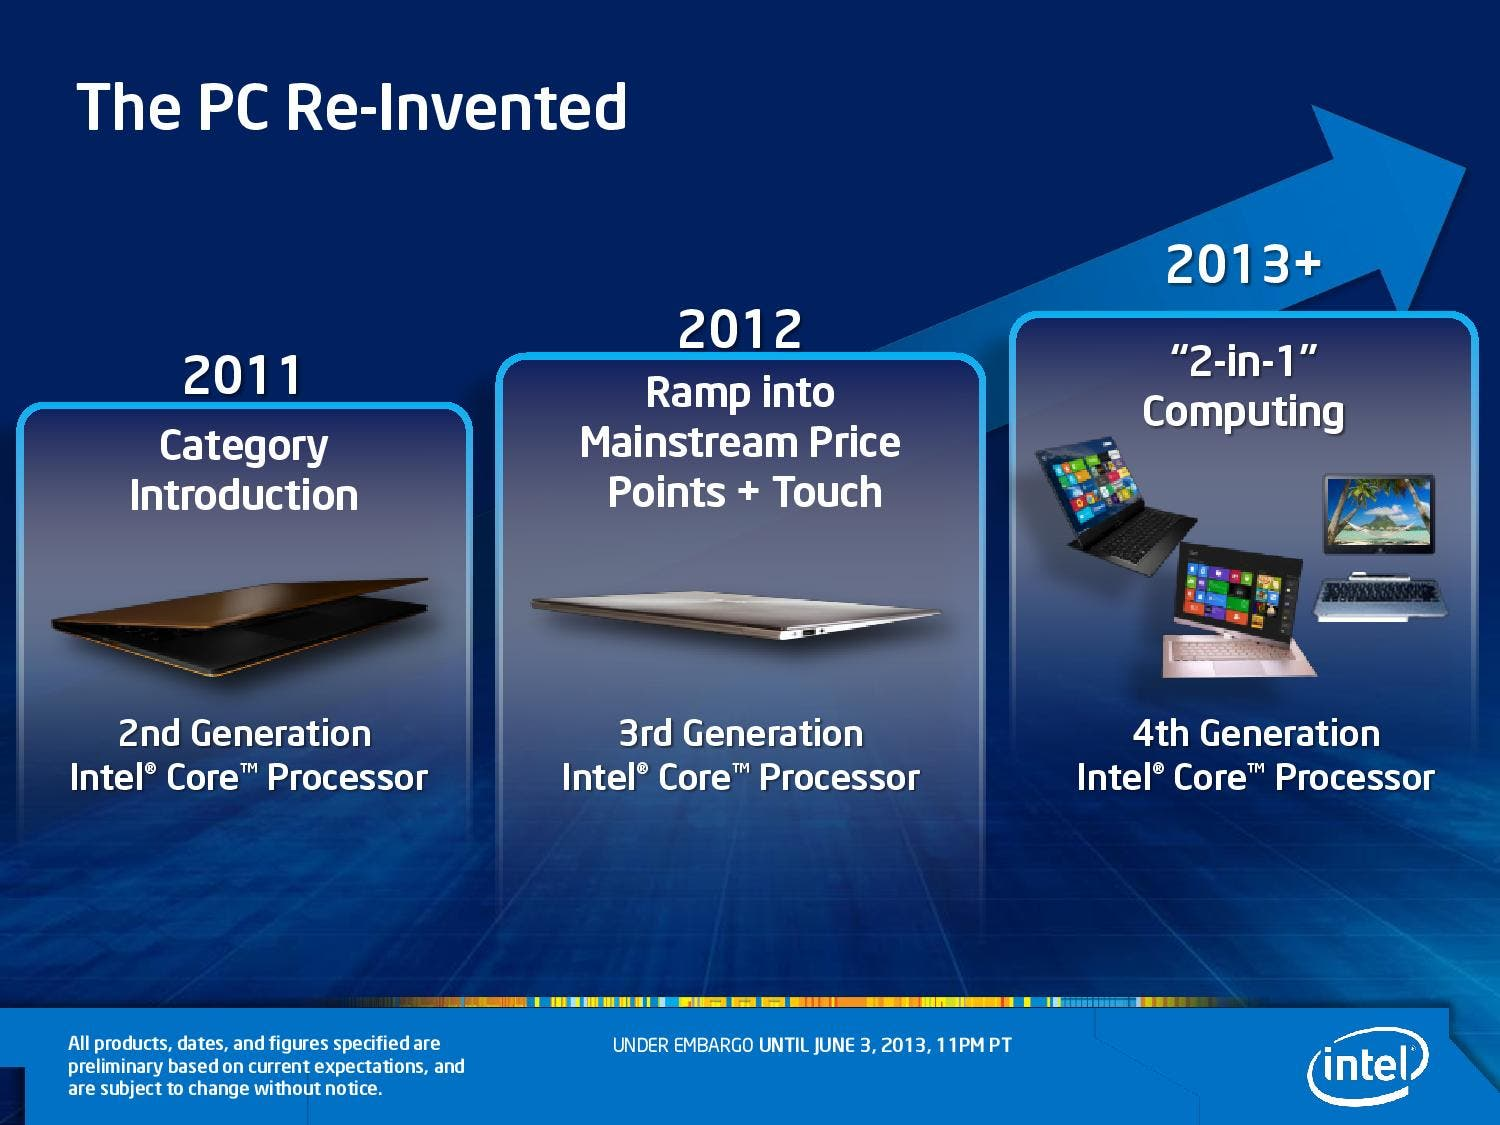 4th Gen Intel Core PressBriefing 5 29 page 004 Intel Haswell offiziell angekündigt